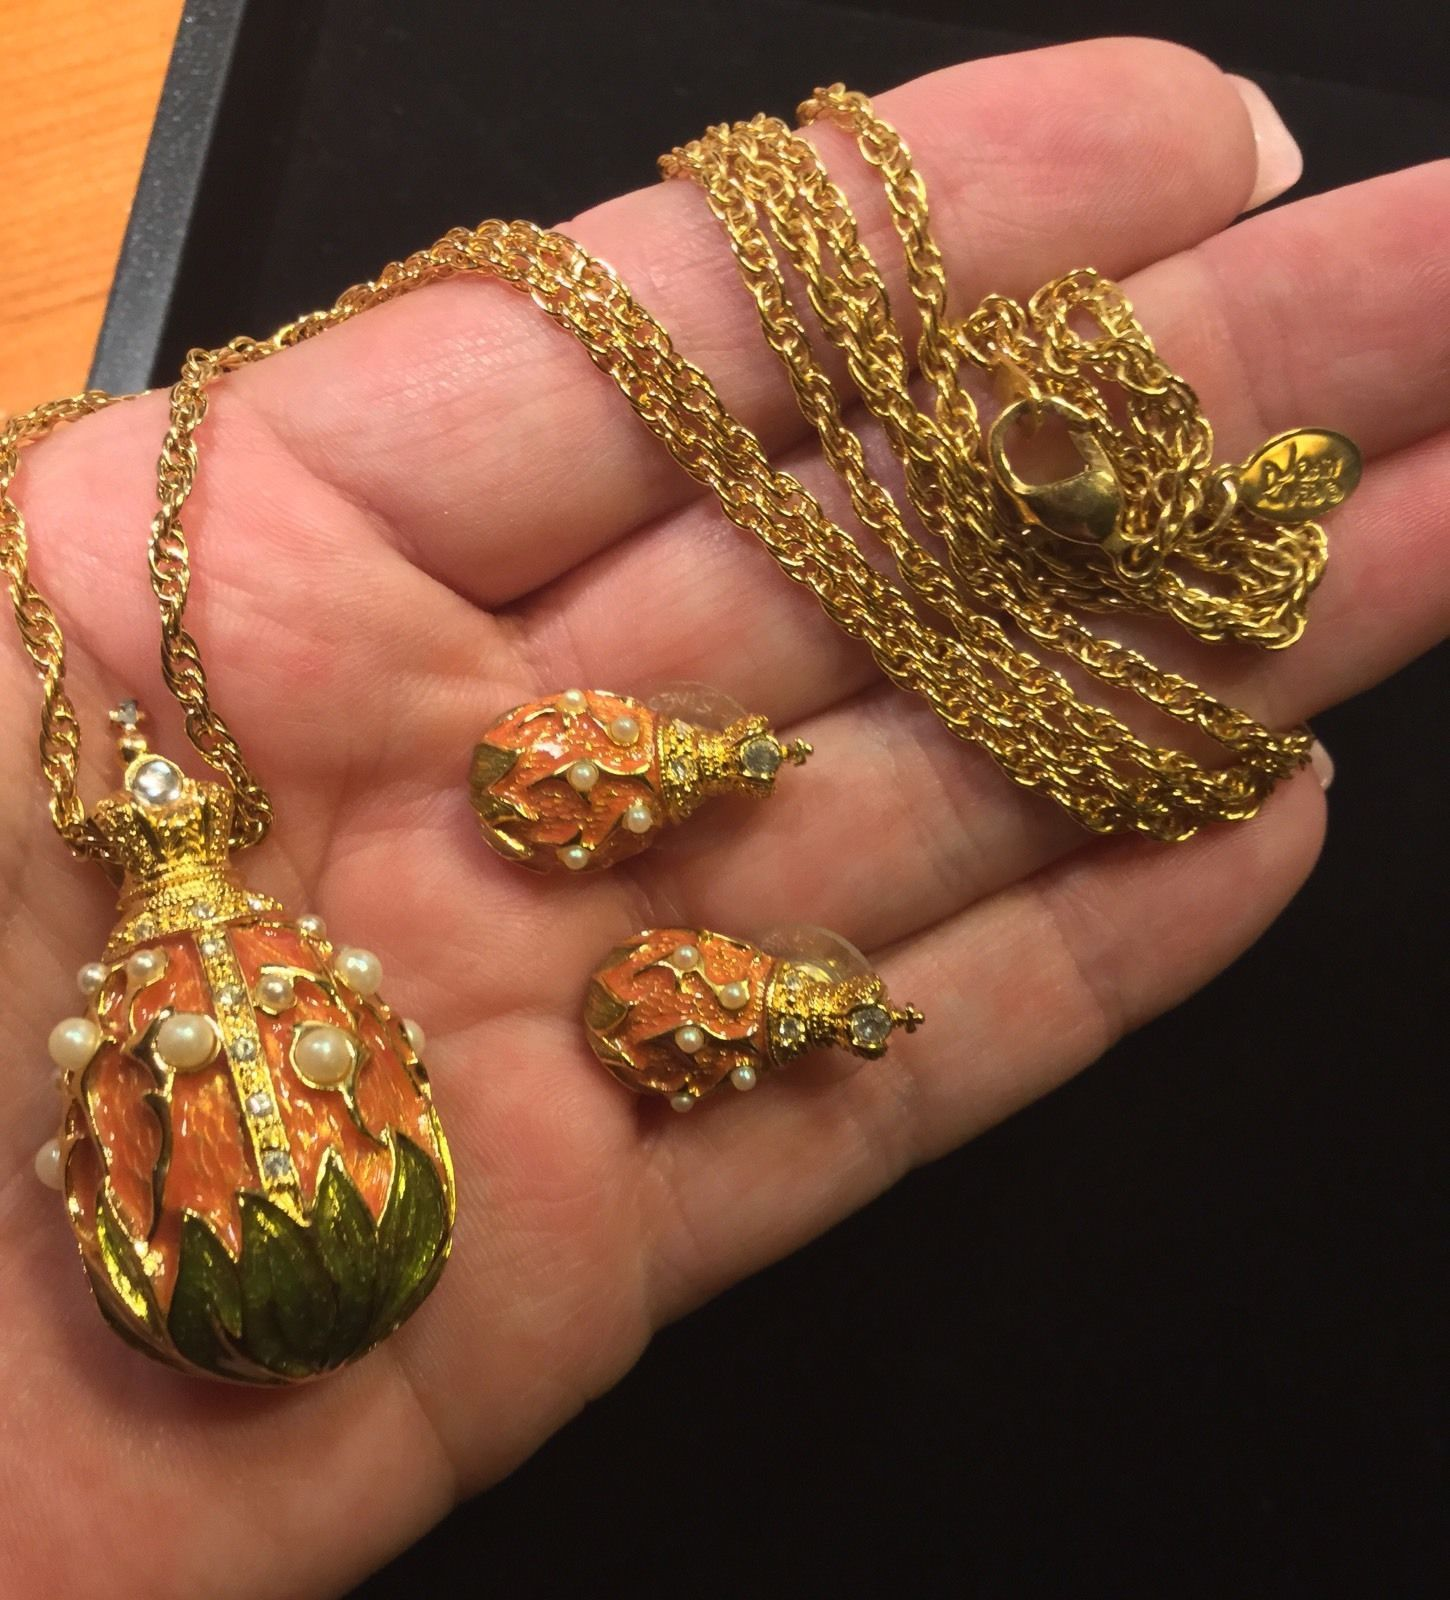 Joan Rivers Lily of The Valley Egg Earrings and Necklace Set | eBay